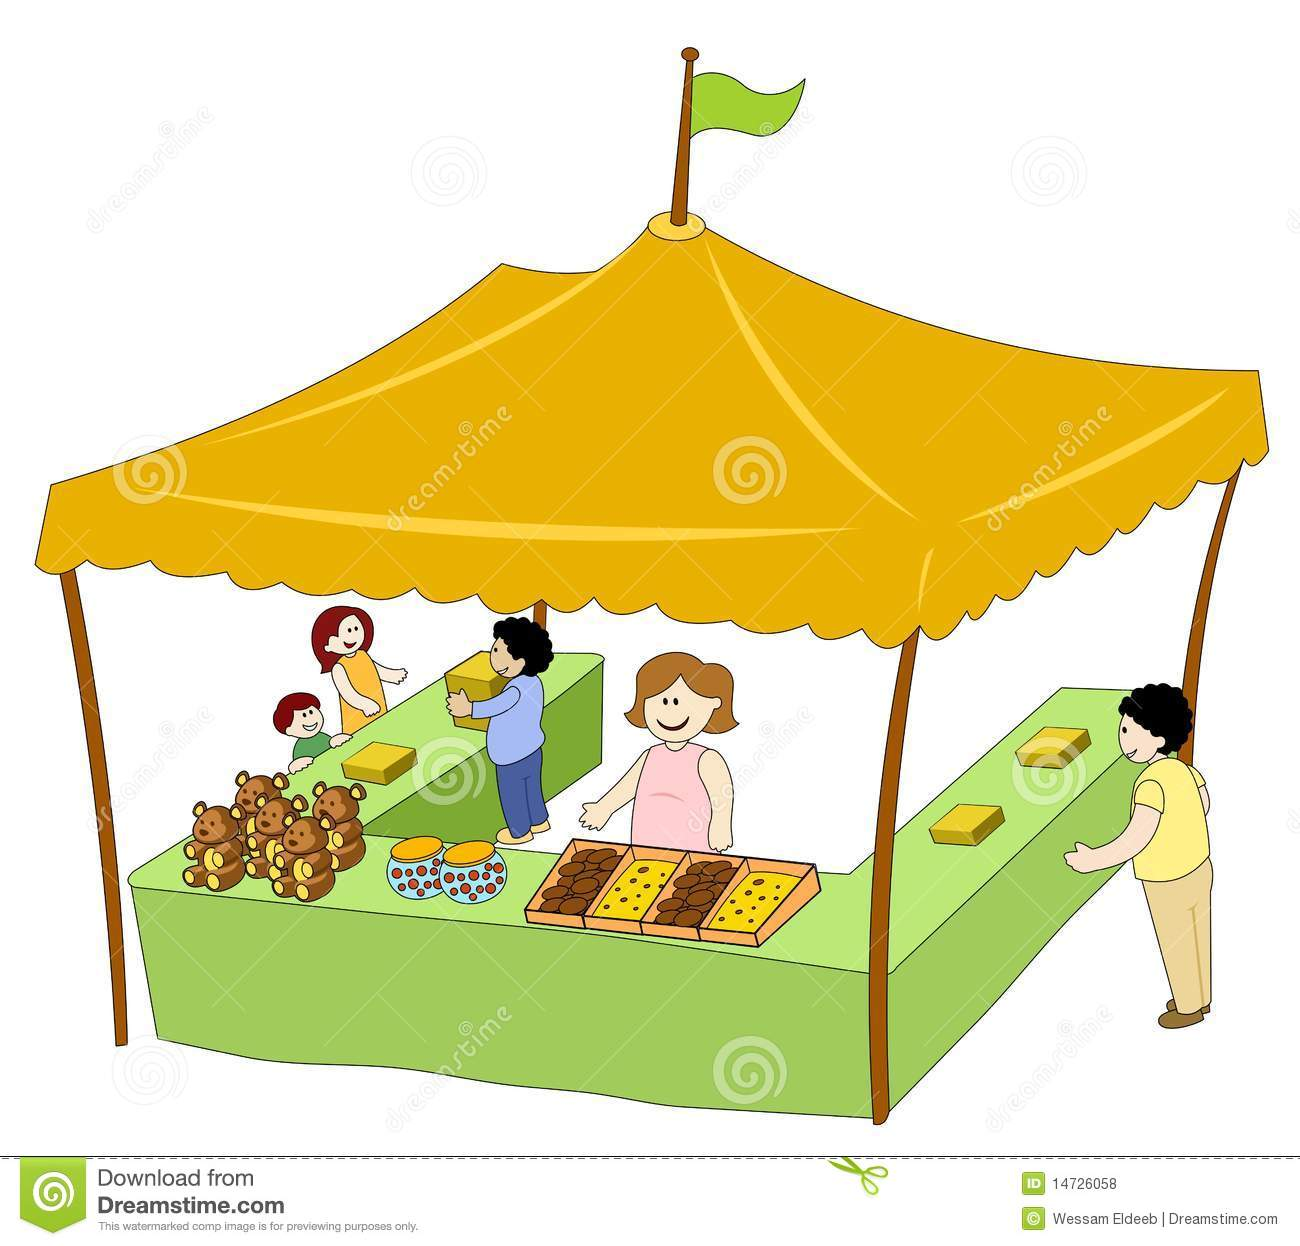 Market Stall Cartoon Stock Photos, Images, & Pictures.